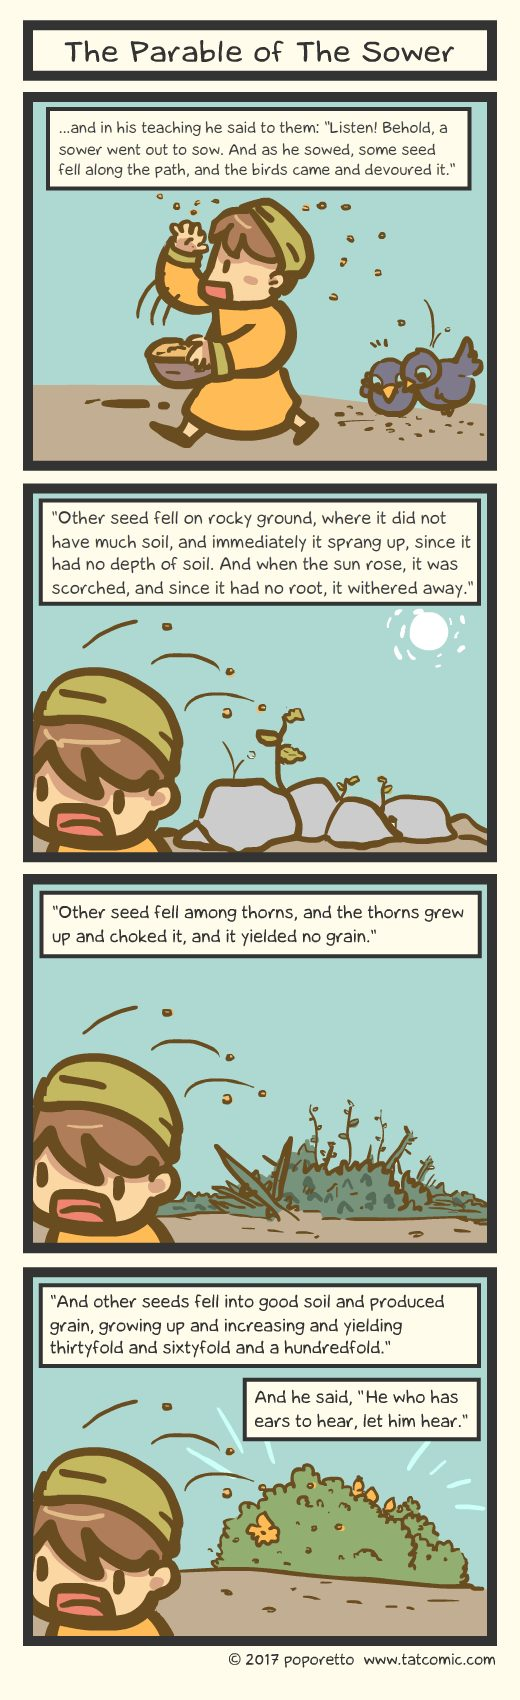 Gospel Christian comic strip jesus and the great crowd following him while jesus teaches using parables of the sower who sows the seeds to good soil, bad soil and thorny soil